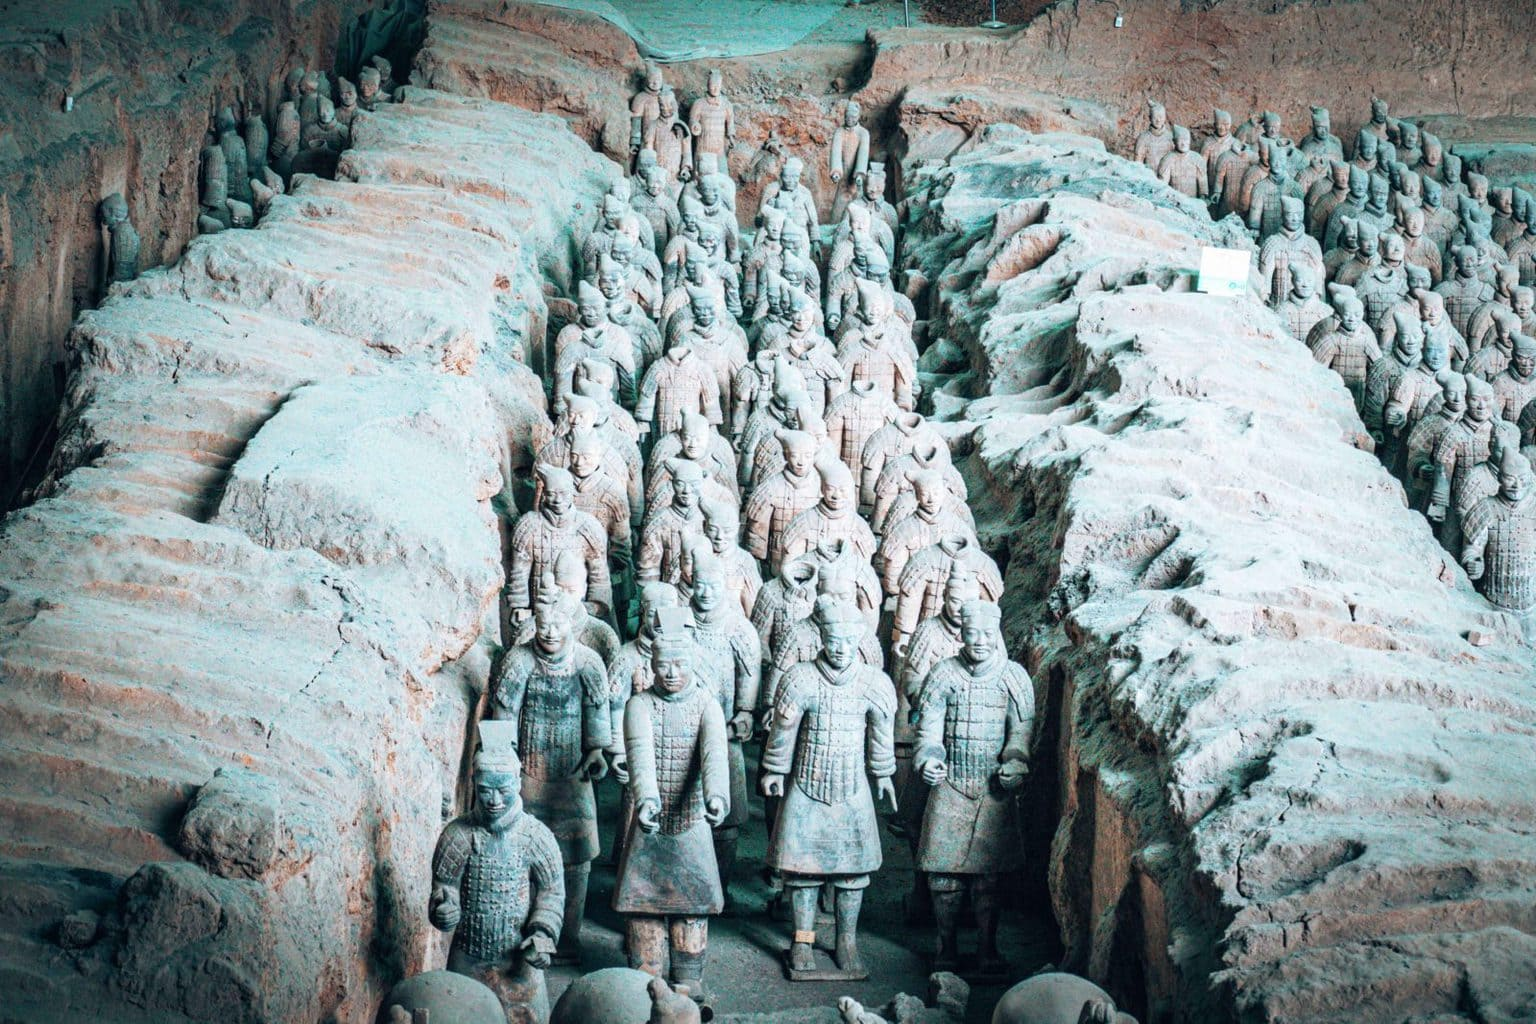 Image close-up of the Terracotta Warriors in Xian China